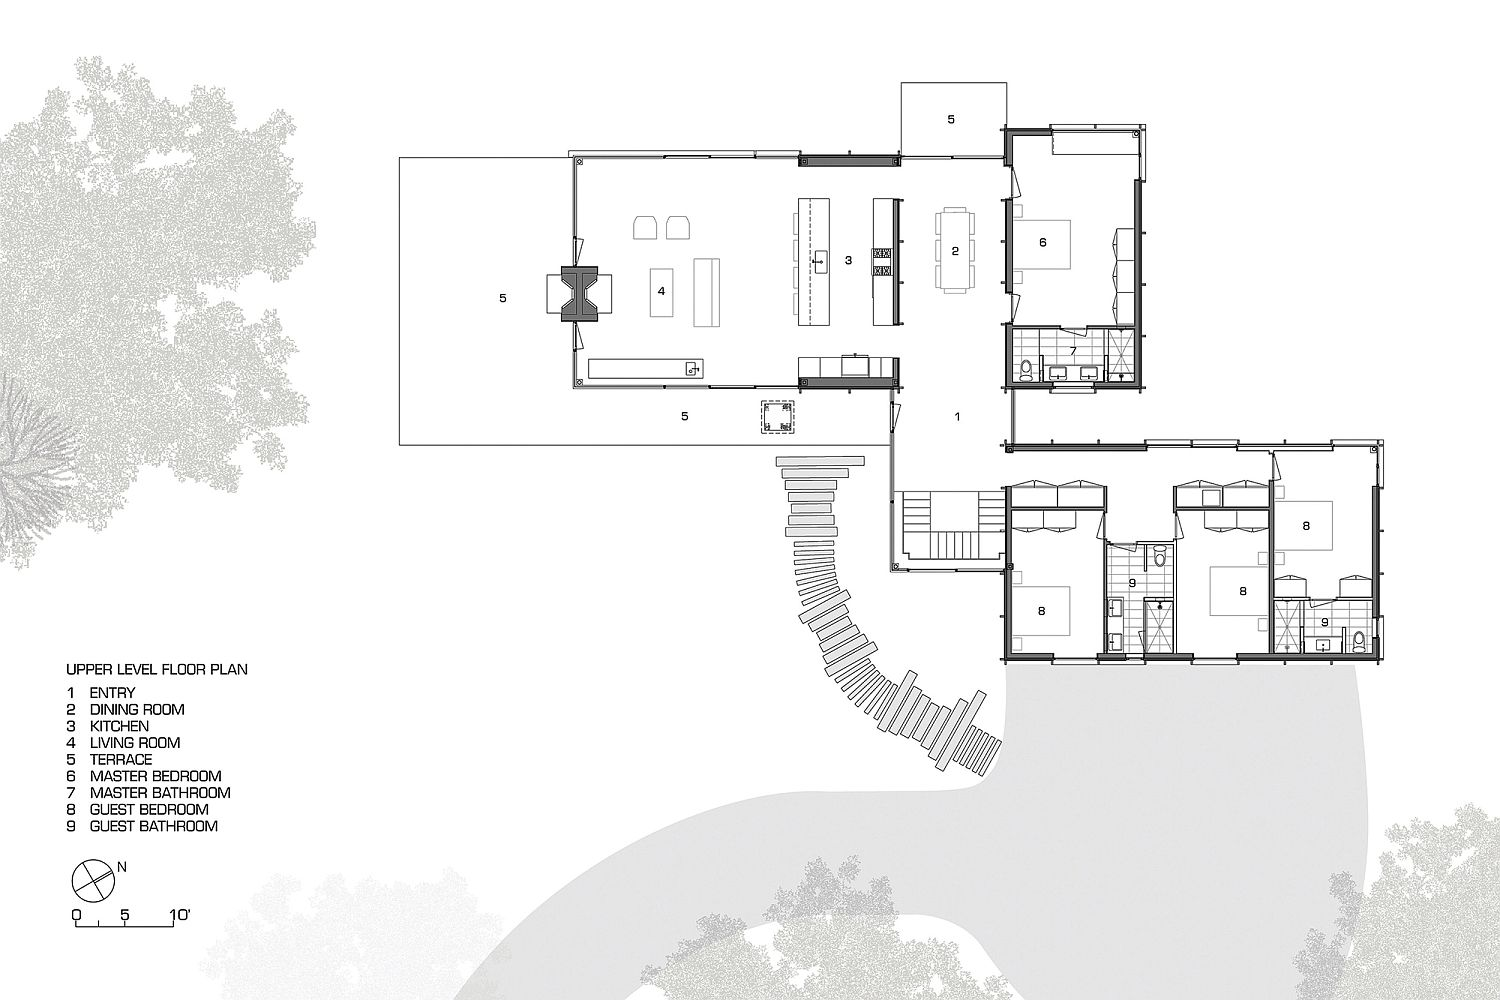 Floor plan of the exquisite Michigan Lake House